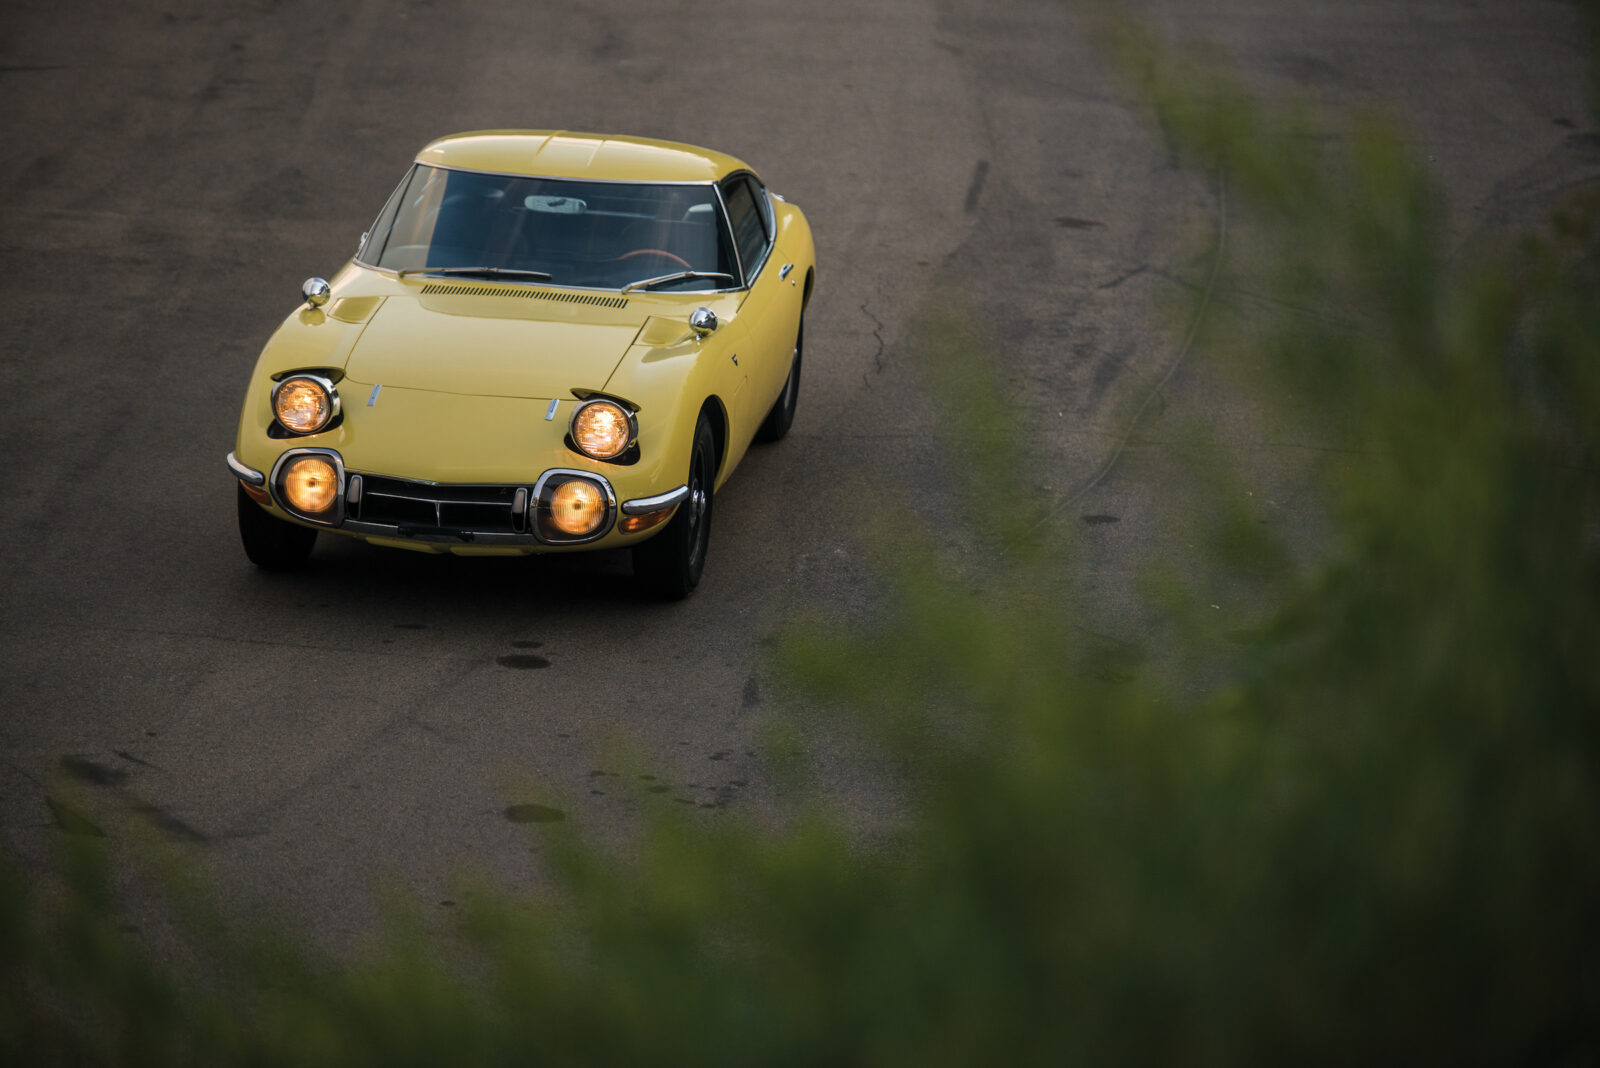 Toyota 2000GT 20 1600x1068 - The Rare Toyota 2000GT